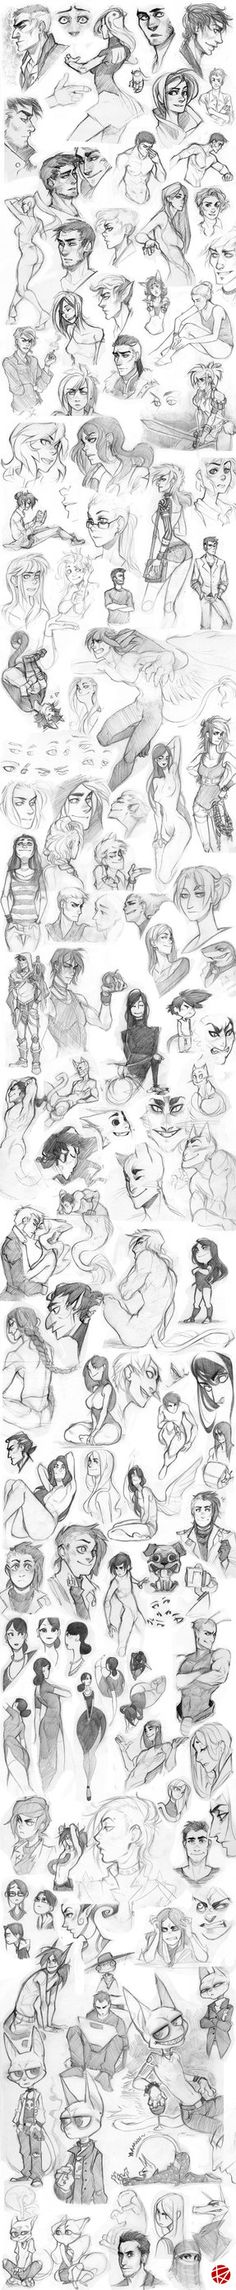 I had lots of unpublished sketches so I decided to gather them all in one place. Those on the top are older and while you'll going down they'll get younger > u > Making sketch dumps is really...